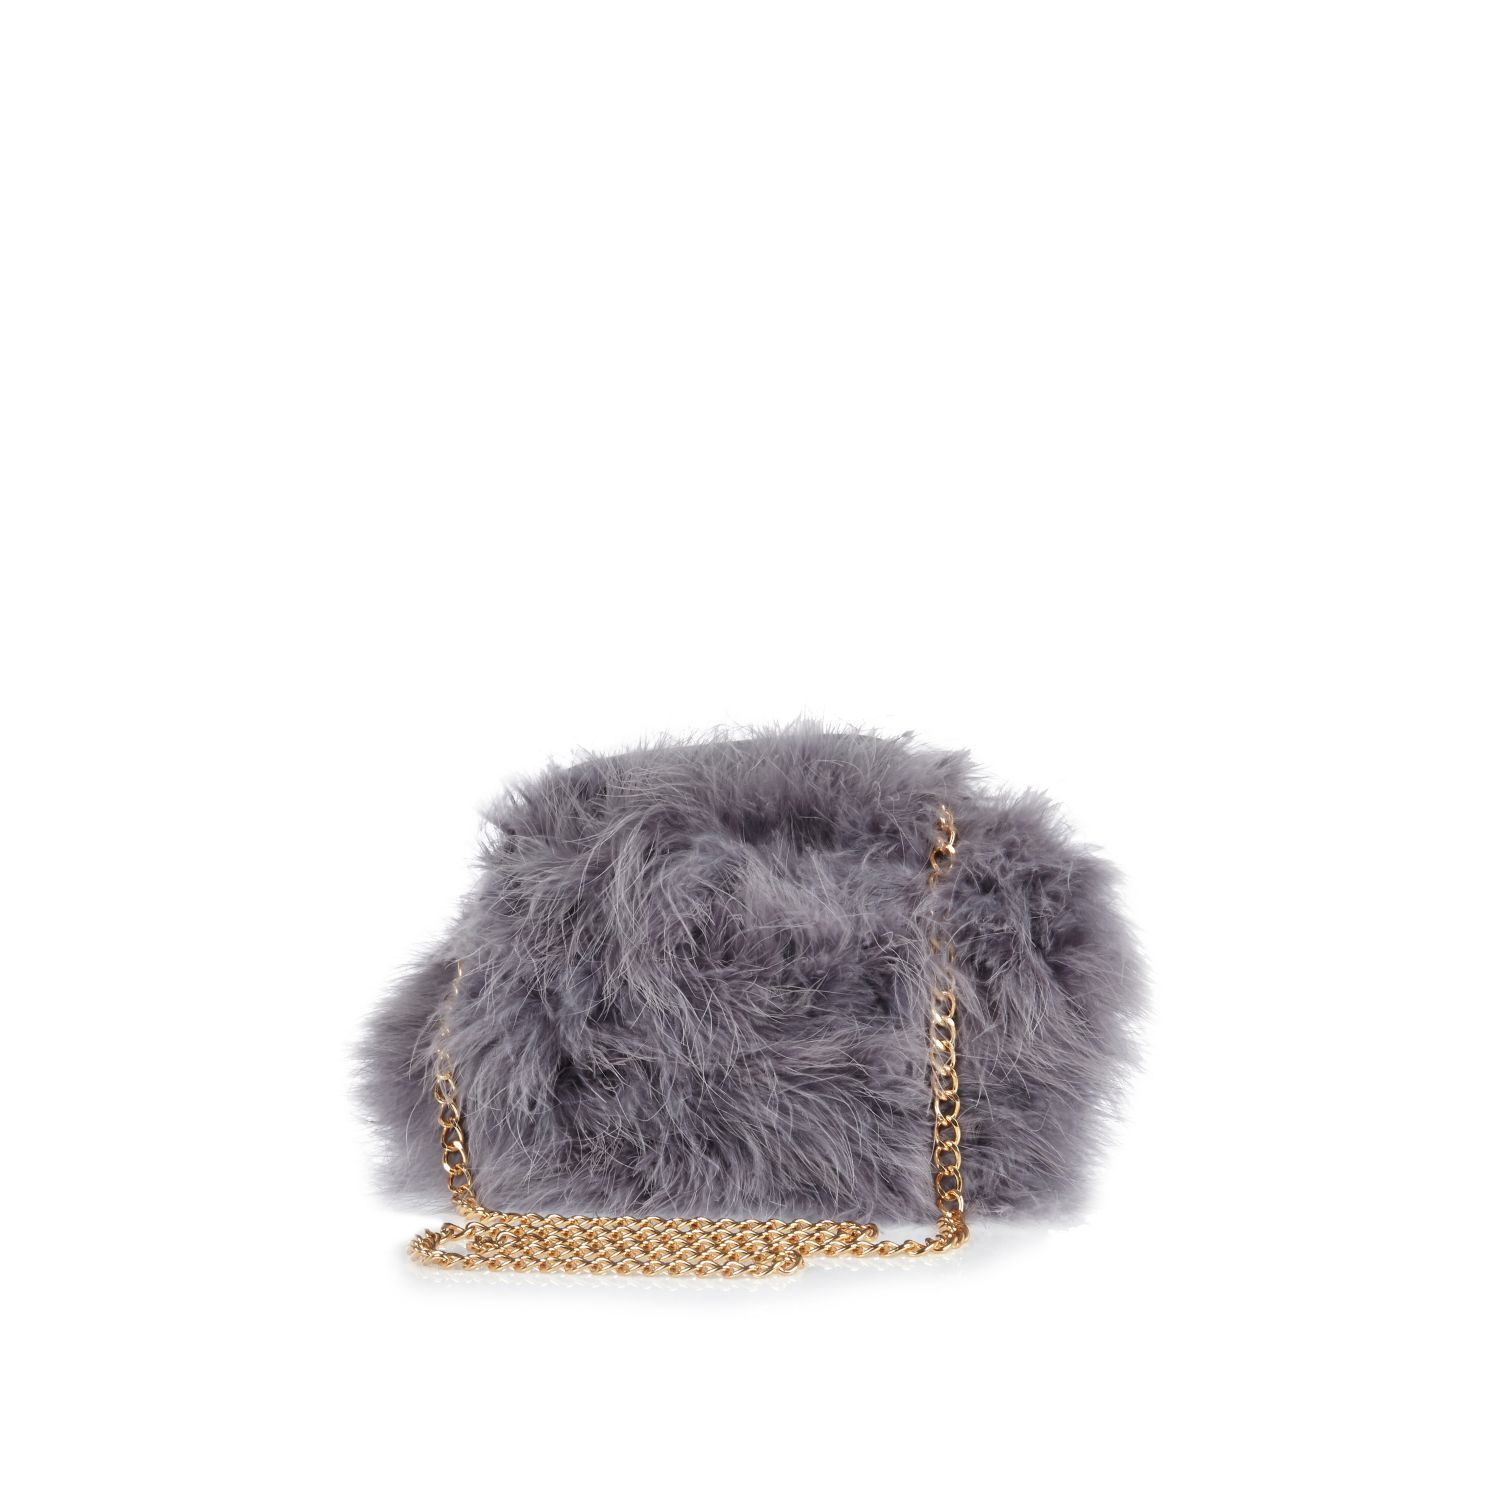 6bba8d504 Grey fluffy cross body bag - cross body bags - bags / purses - women ...